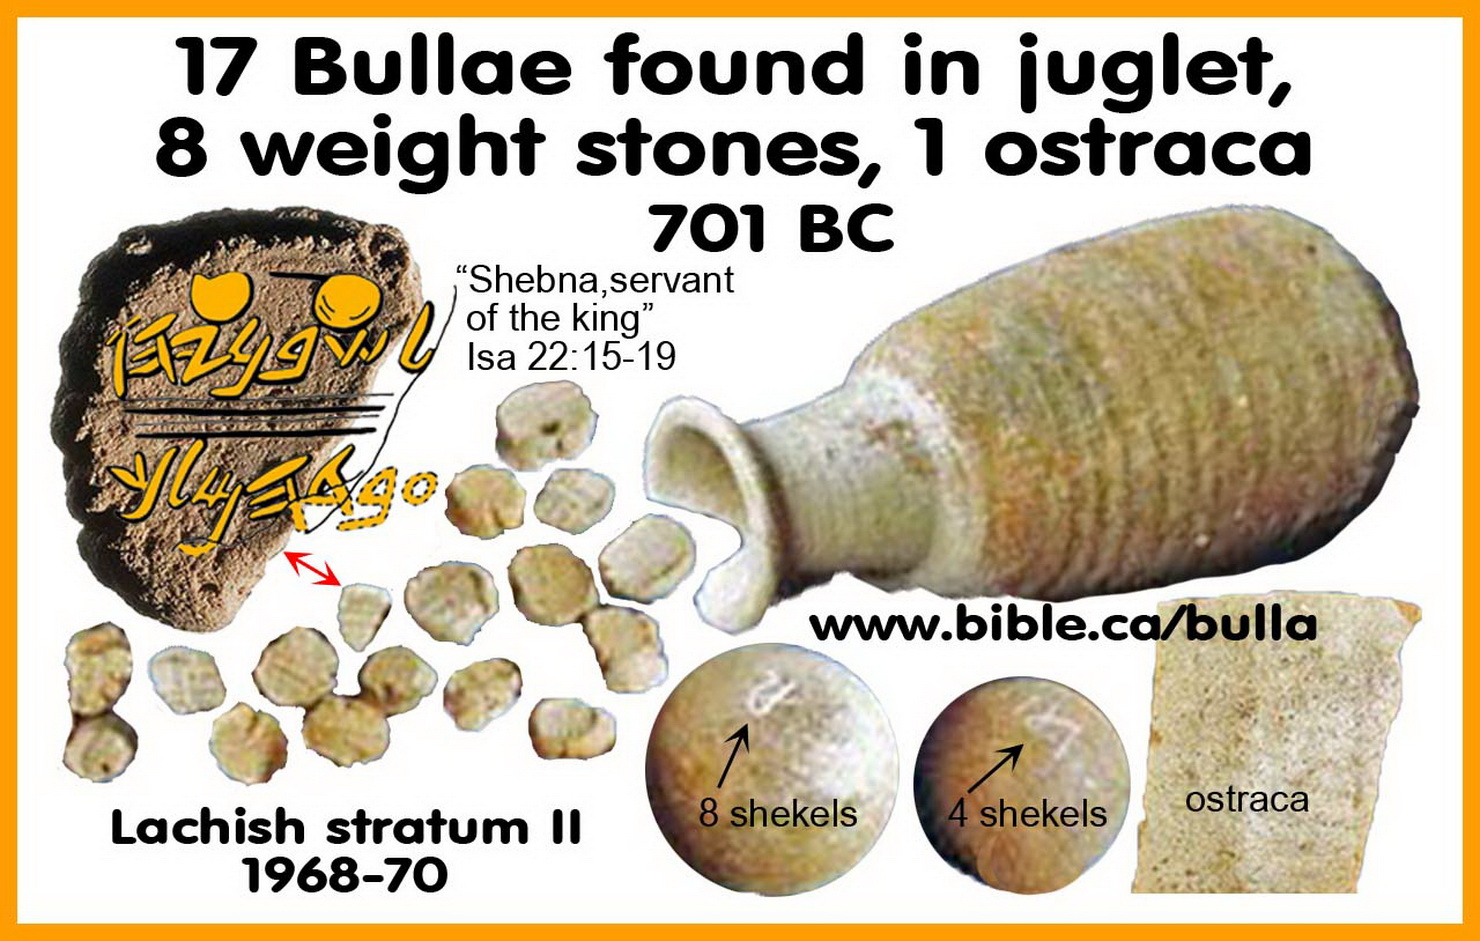 bible-coins-history-money-weight-system-Iron-Age-8weight-stones-17bulla-in-juglet-ostraca-shebna-servan